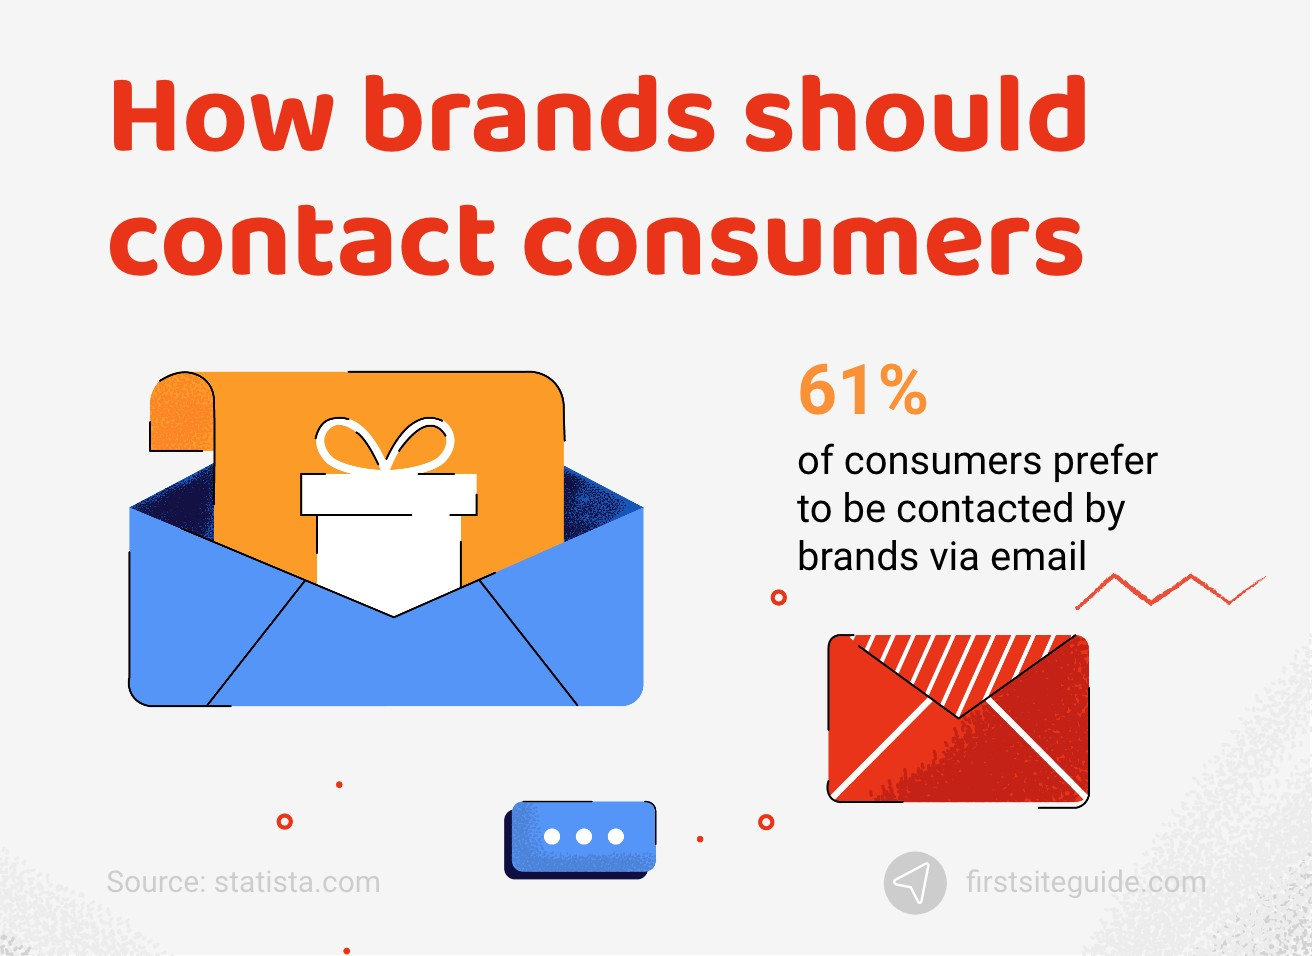 How brands should contact consumers